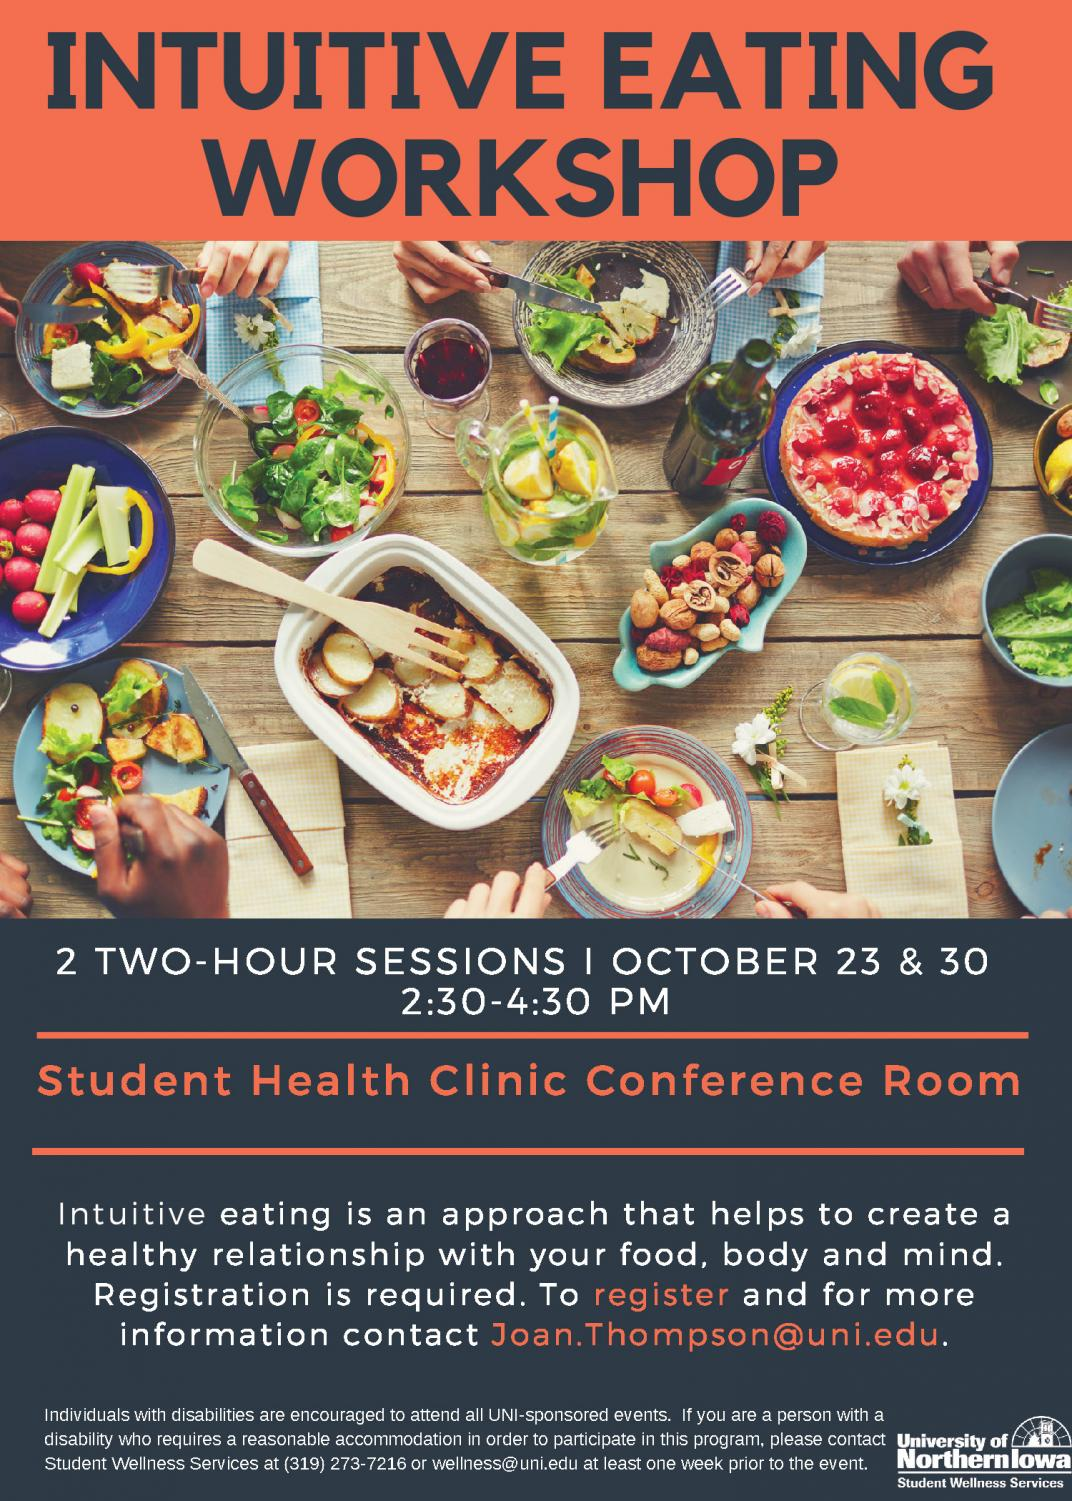 UNI's Student Health Clinic will host two intuitive eating workshops on Oct. 23 and 30.